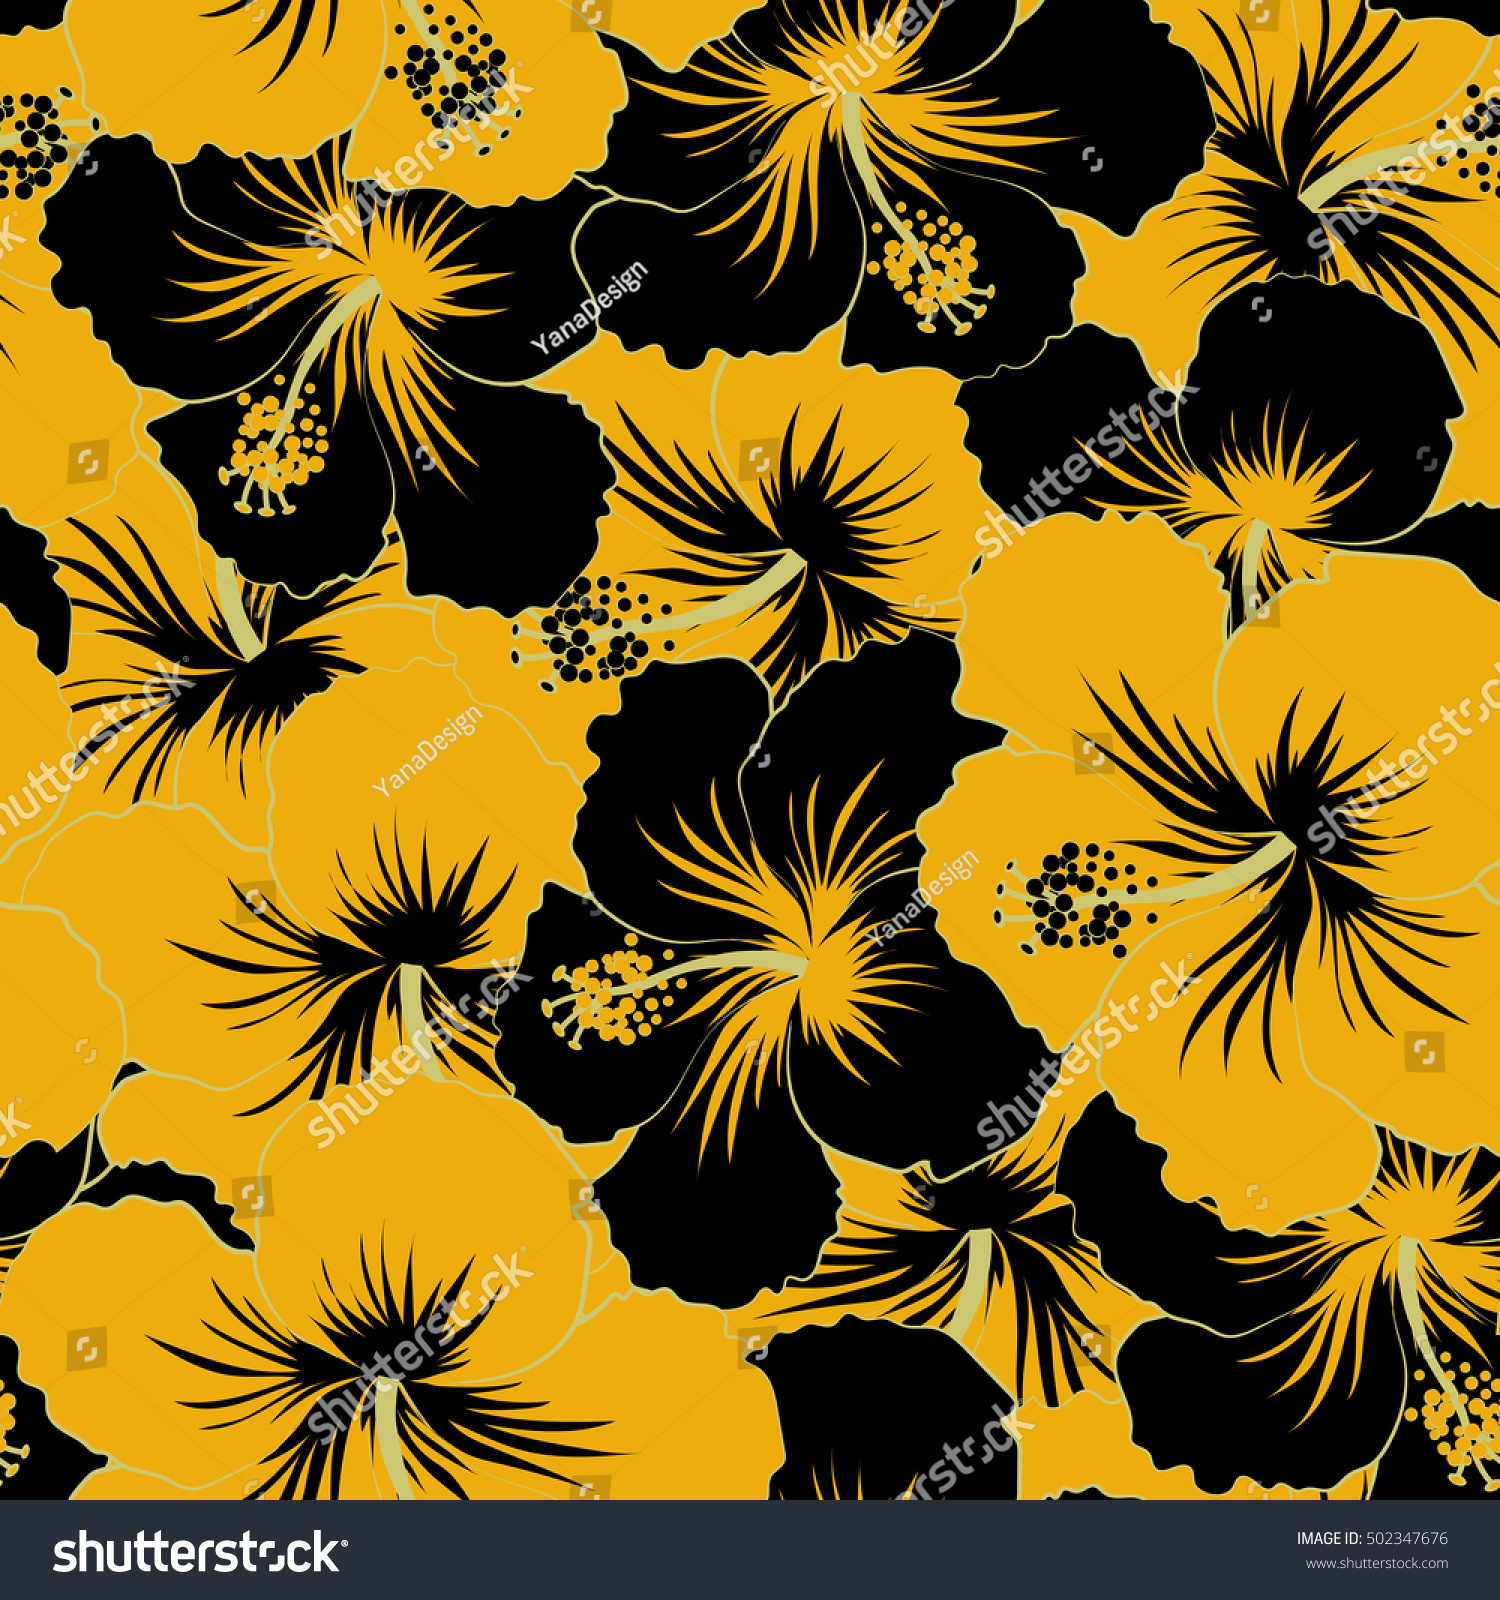 Hibiscus flower seamless pattern black yellow stock illustration hibiscus flower seamless pattern in black and yellow colors izmirmasajfo